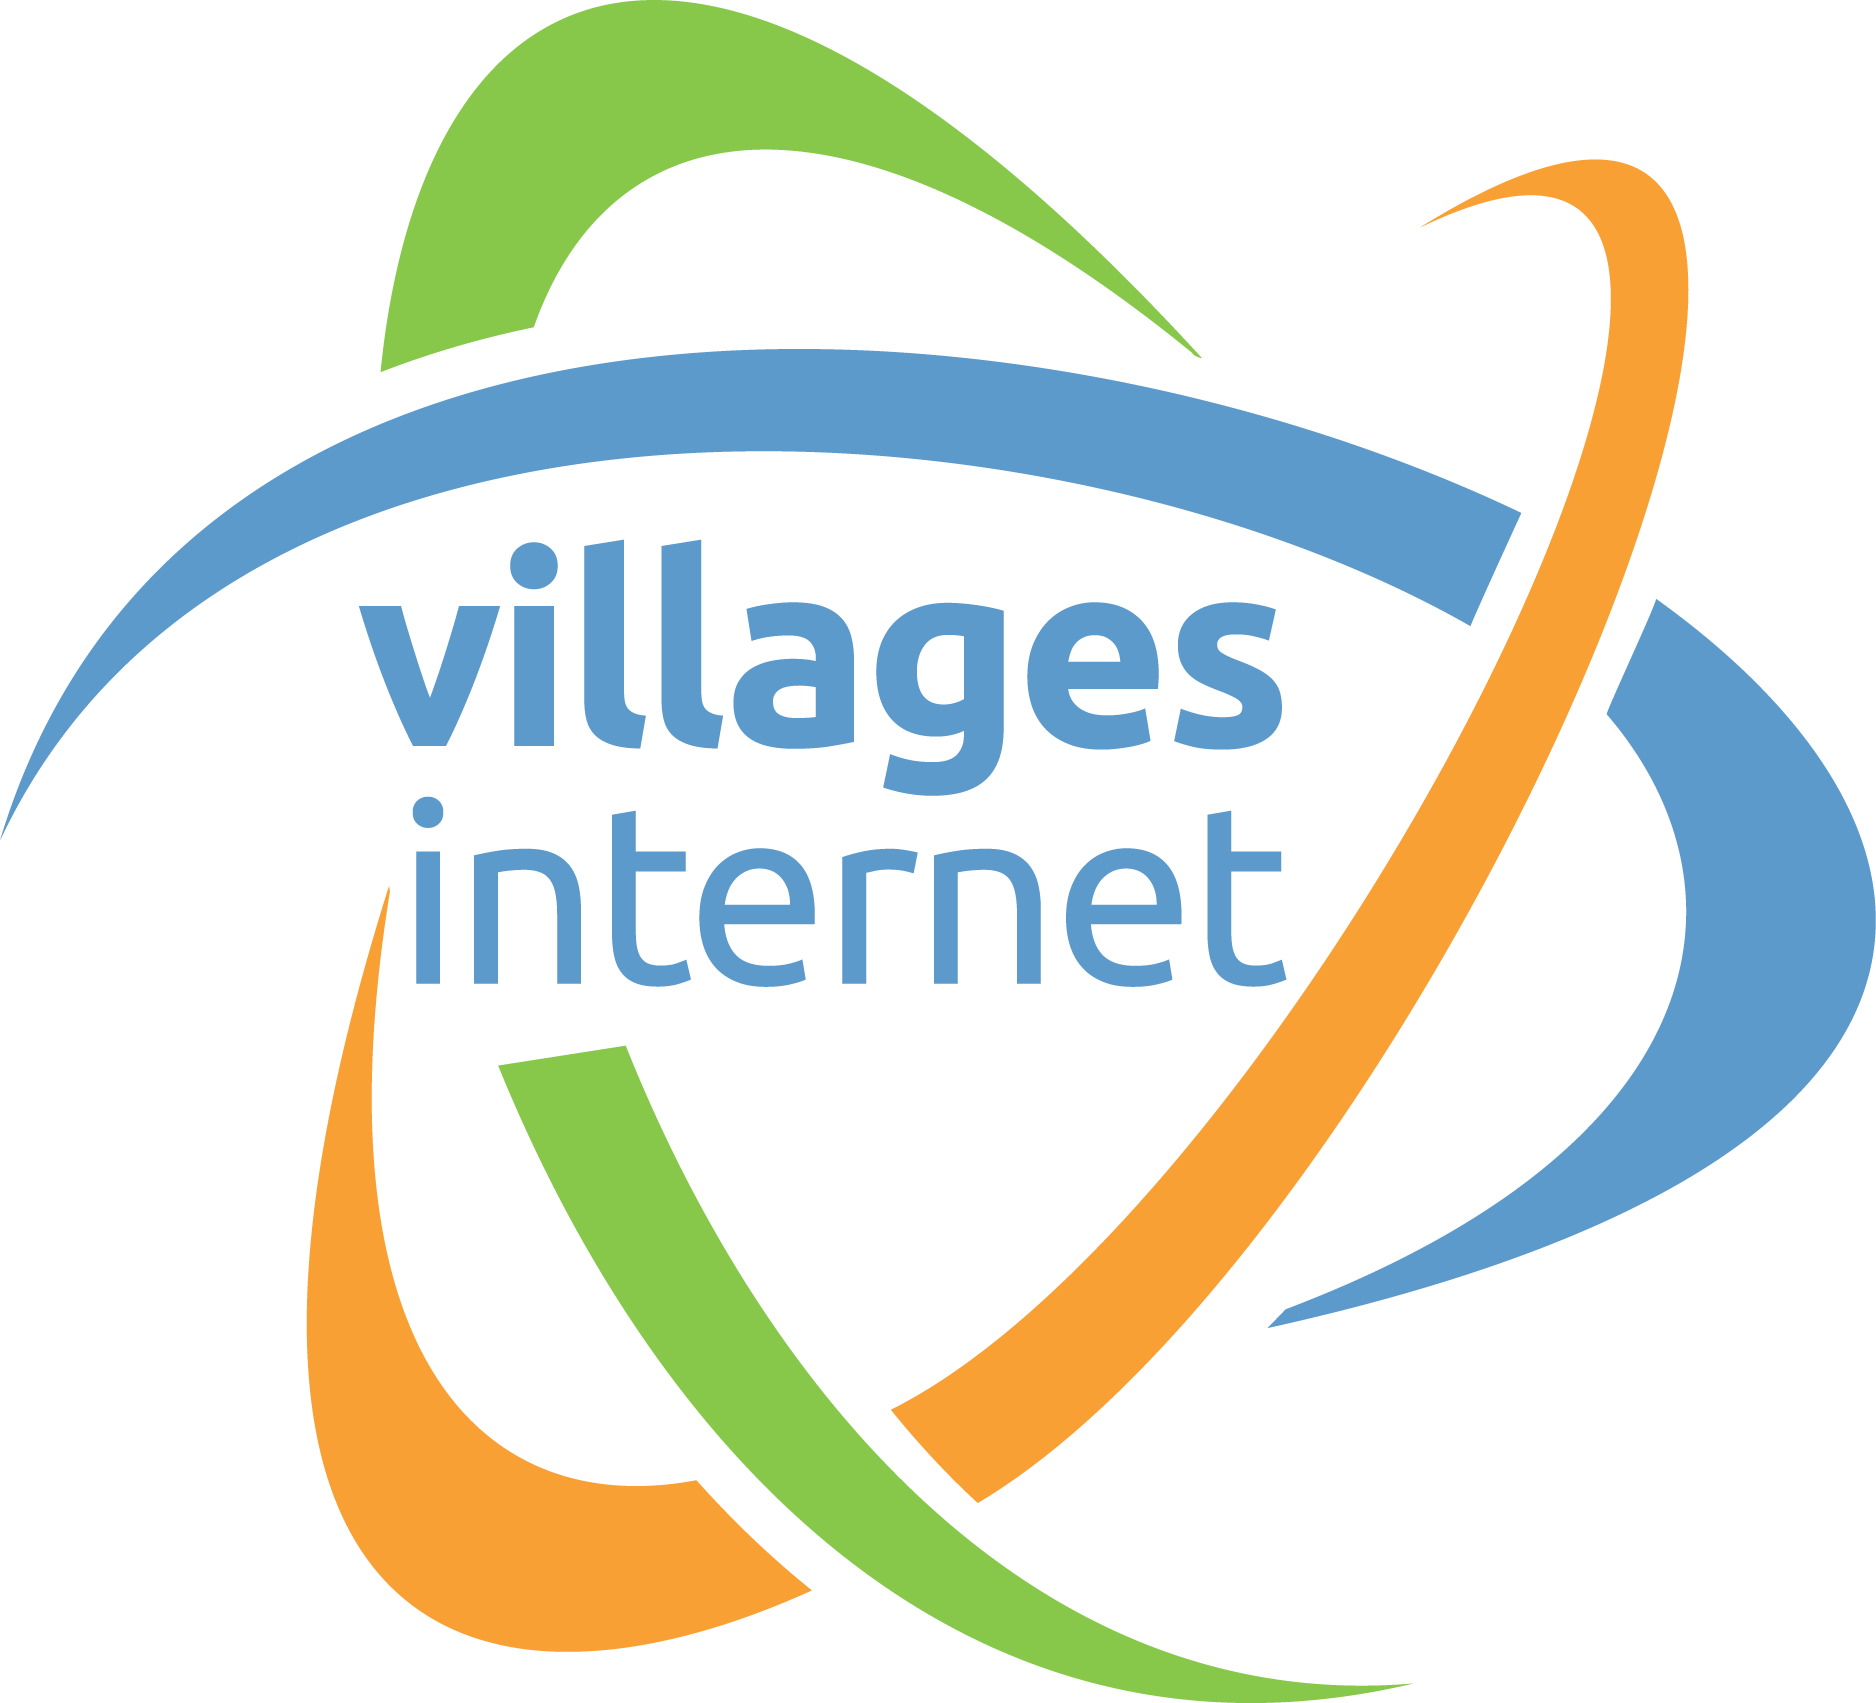 Villages Internet